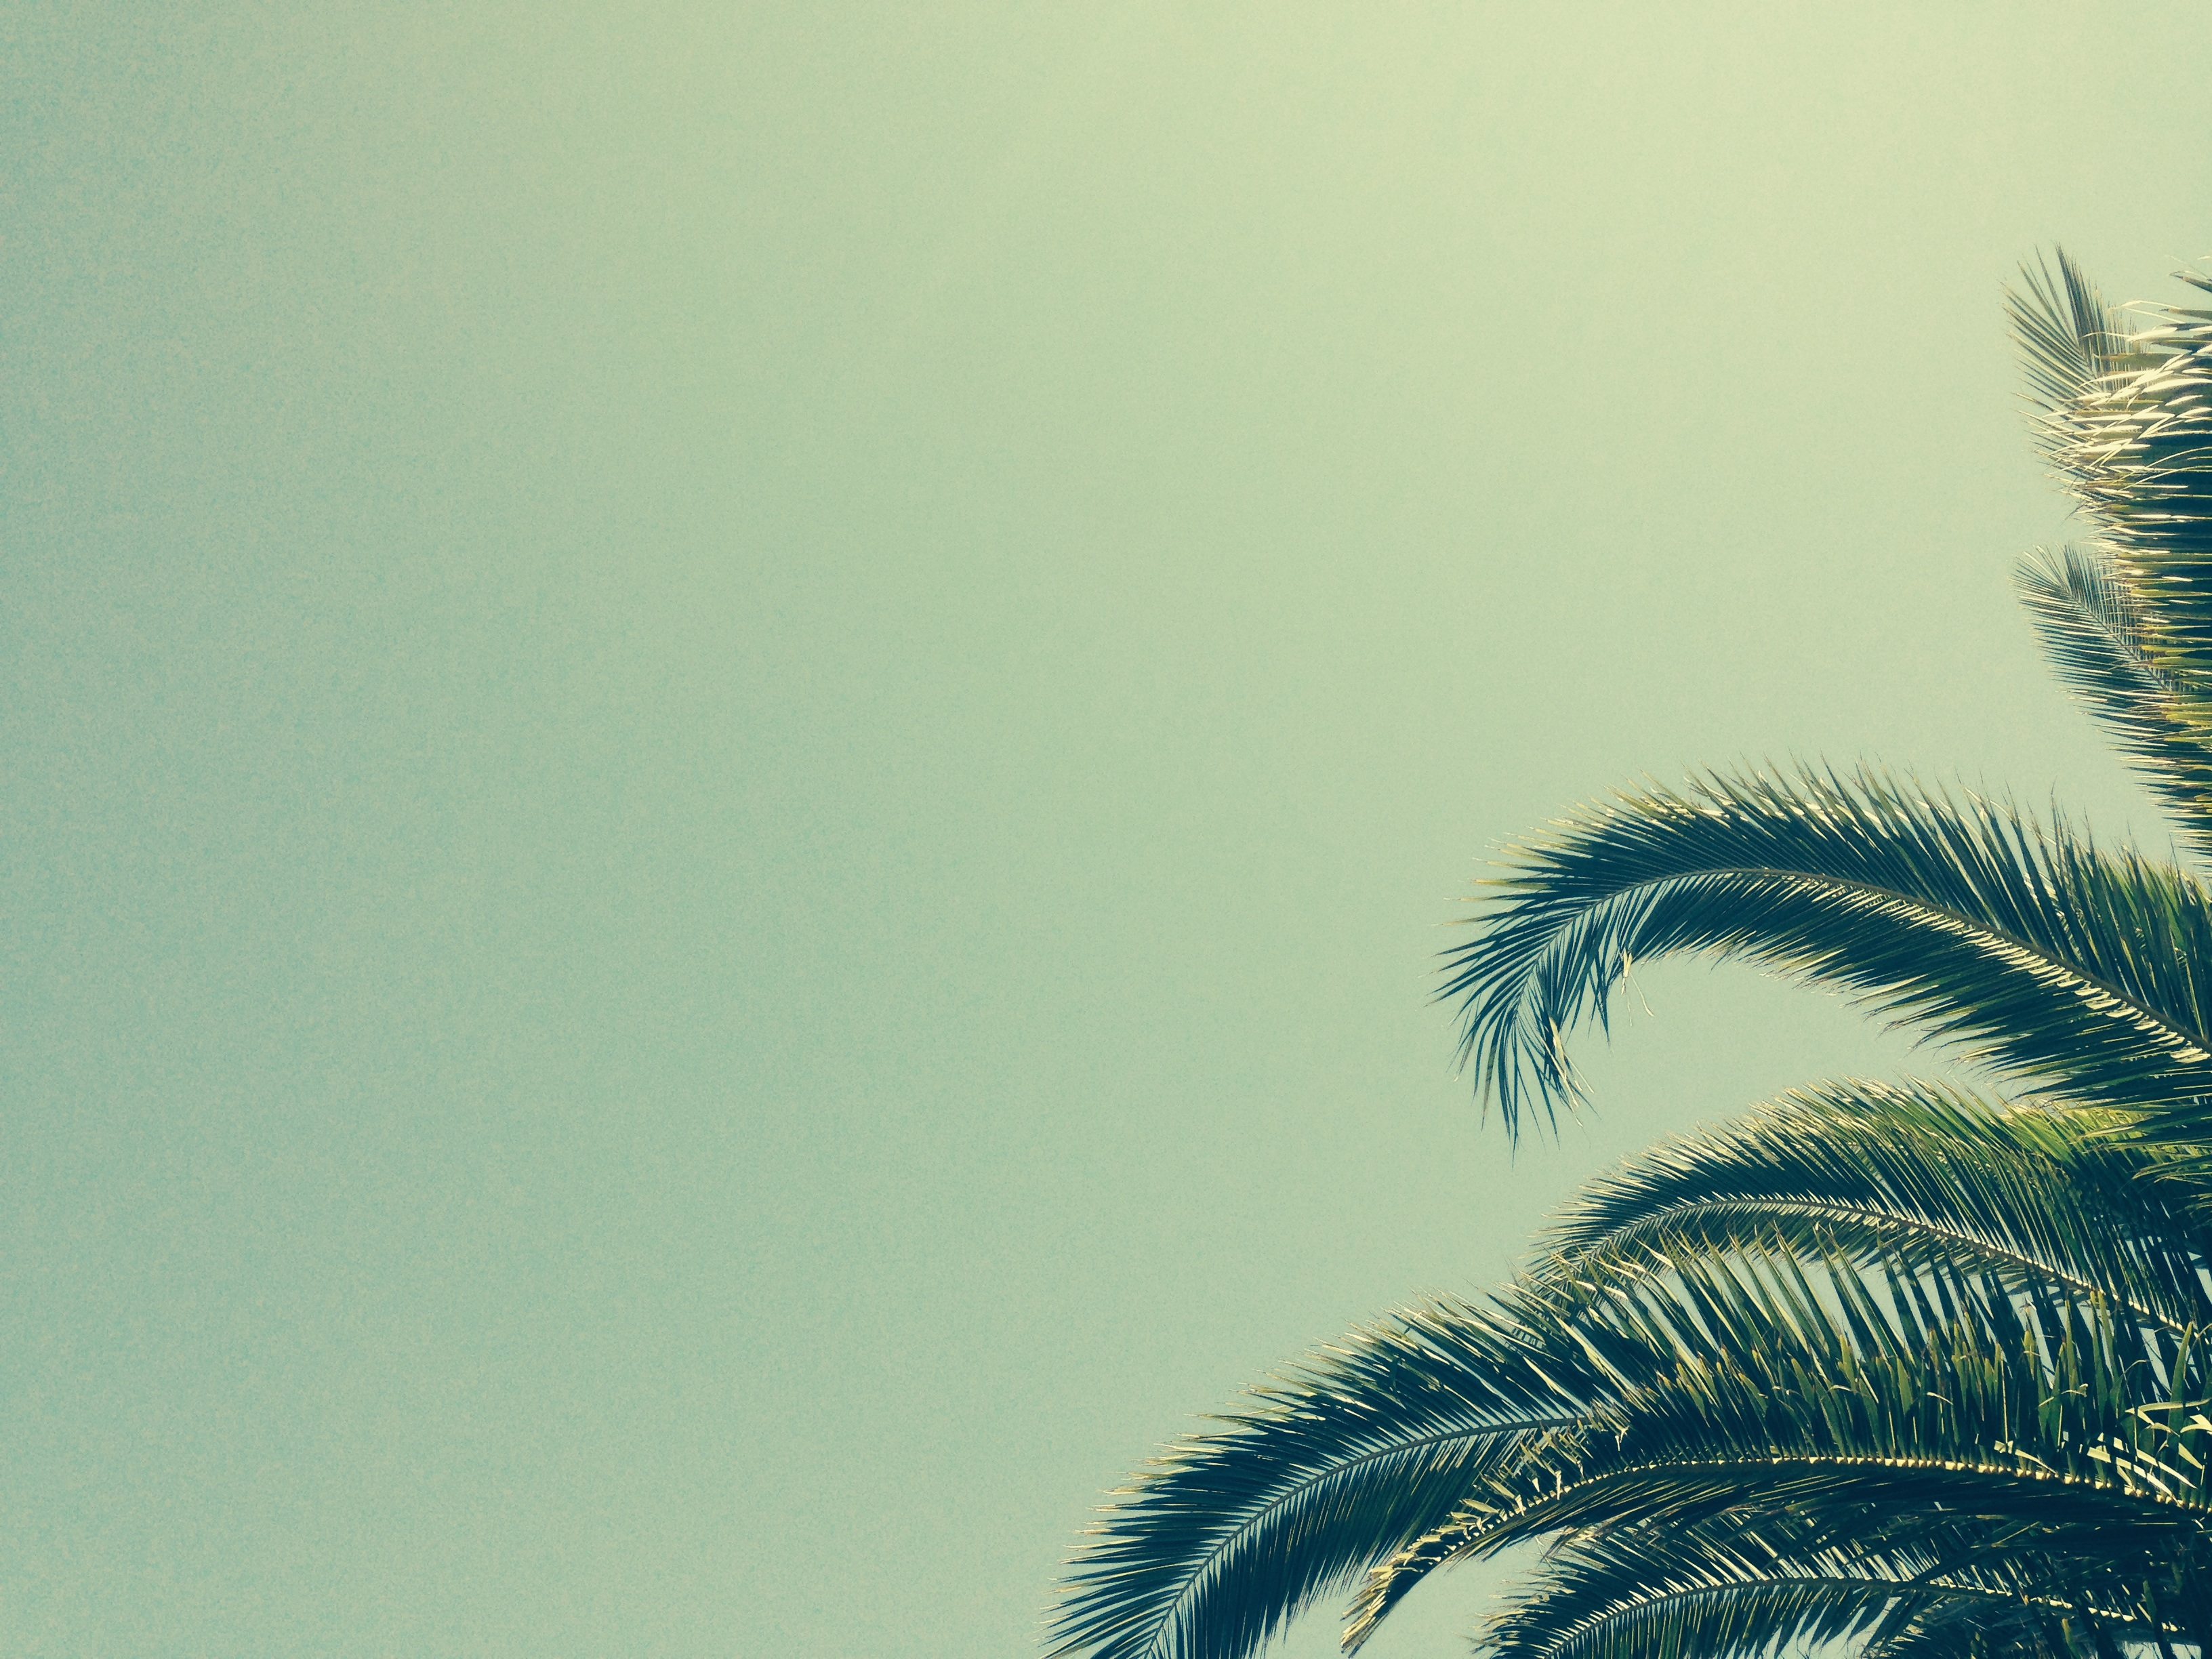 80565 download wallpaper Wood, Tree, Minimalism, Palm, Branches, Tropics screensavers and pictures for free